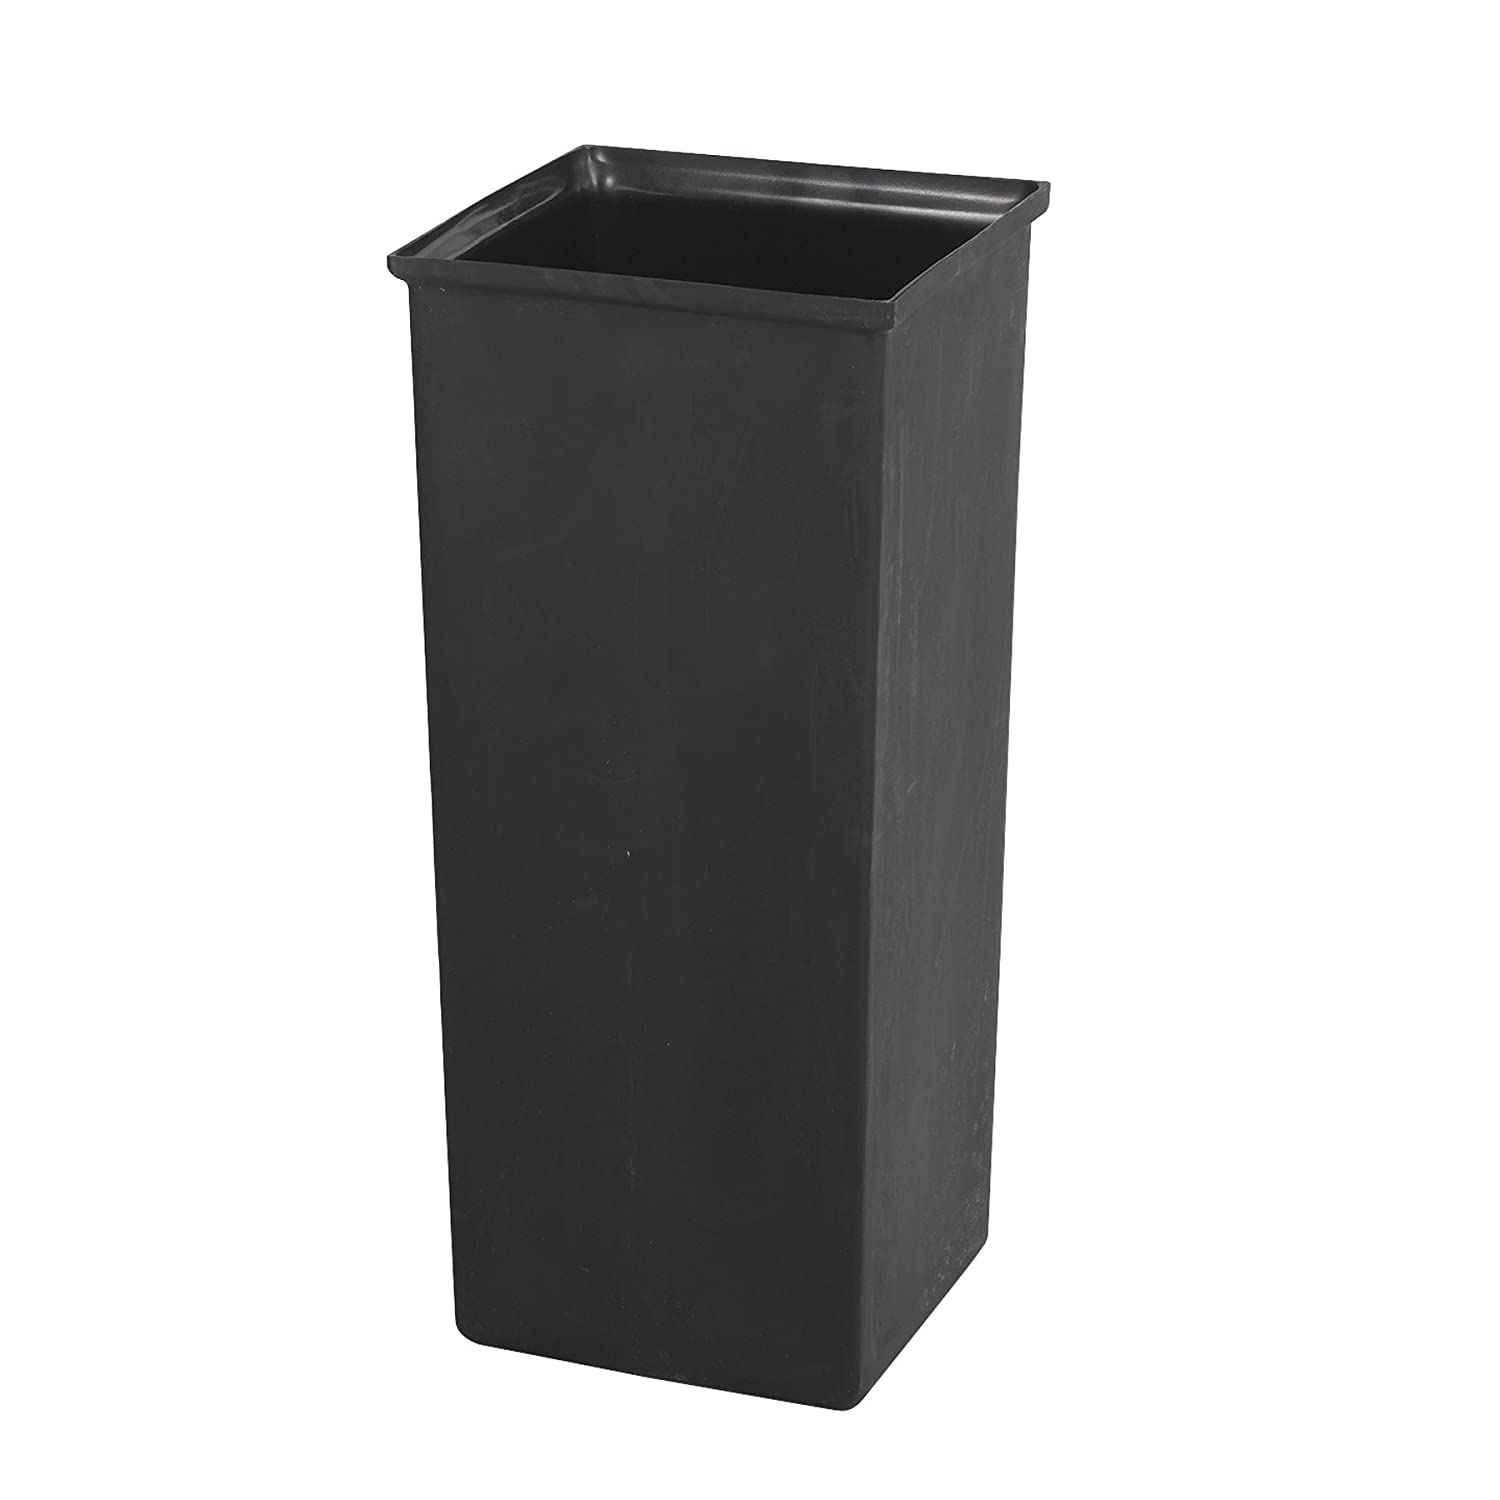 21-Gallon Safco Products 9668 Plastic Liner for 21-Gallon Waste Receptacles, sold separately, Black